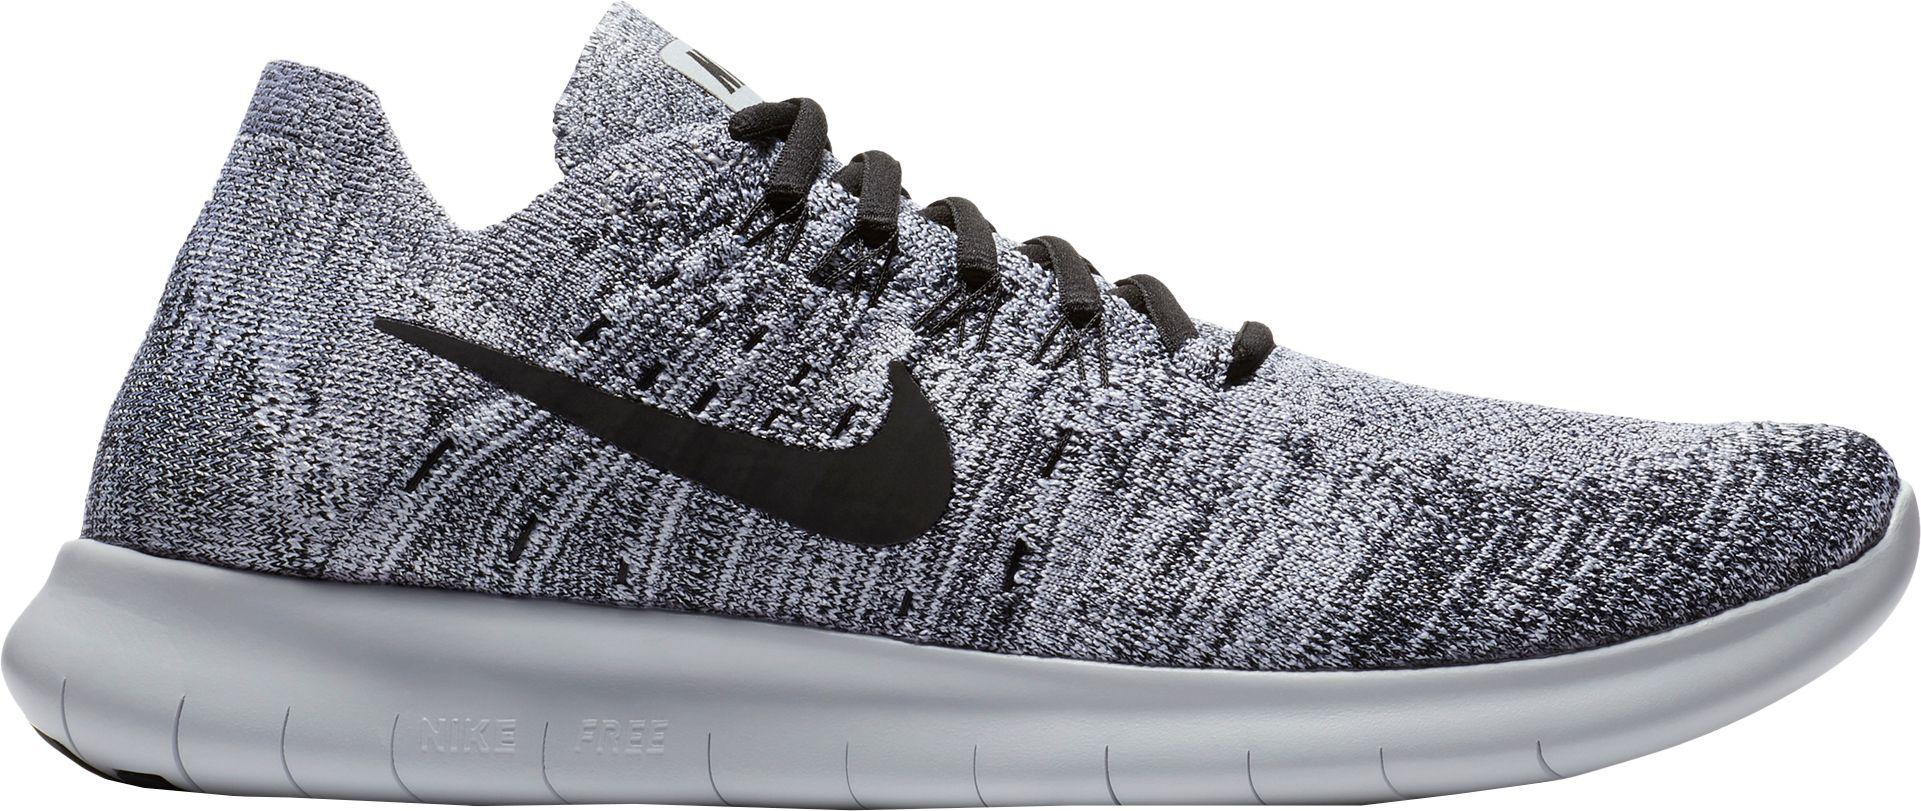 a53c3478c316 ... shop nike gray free rn flyknit 2017 running shoes for men lyst 4a1a3  790ee